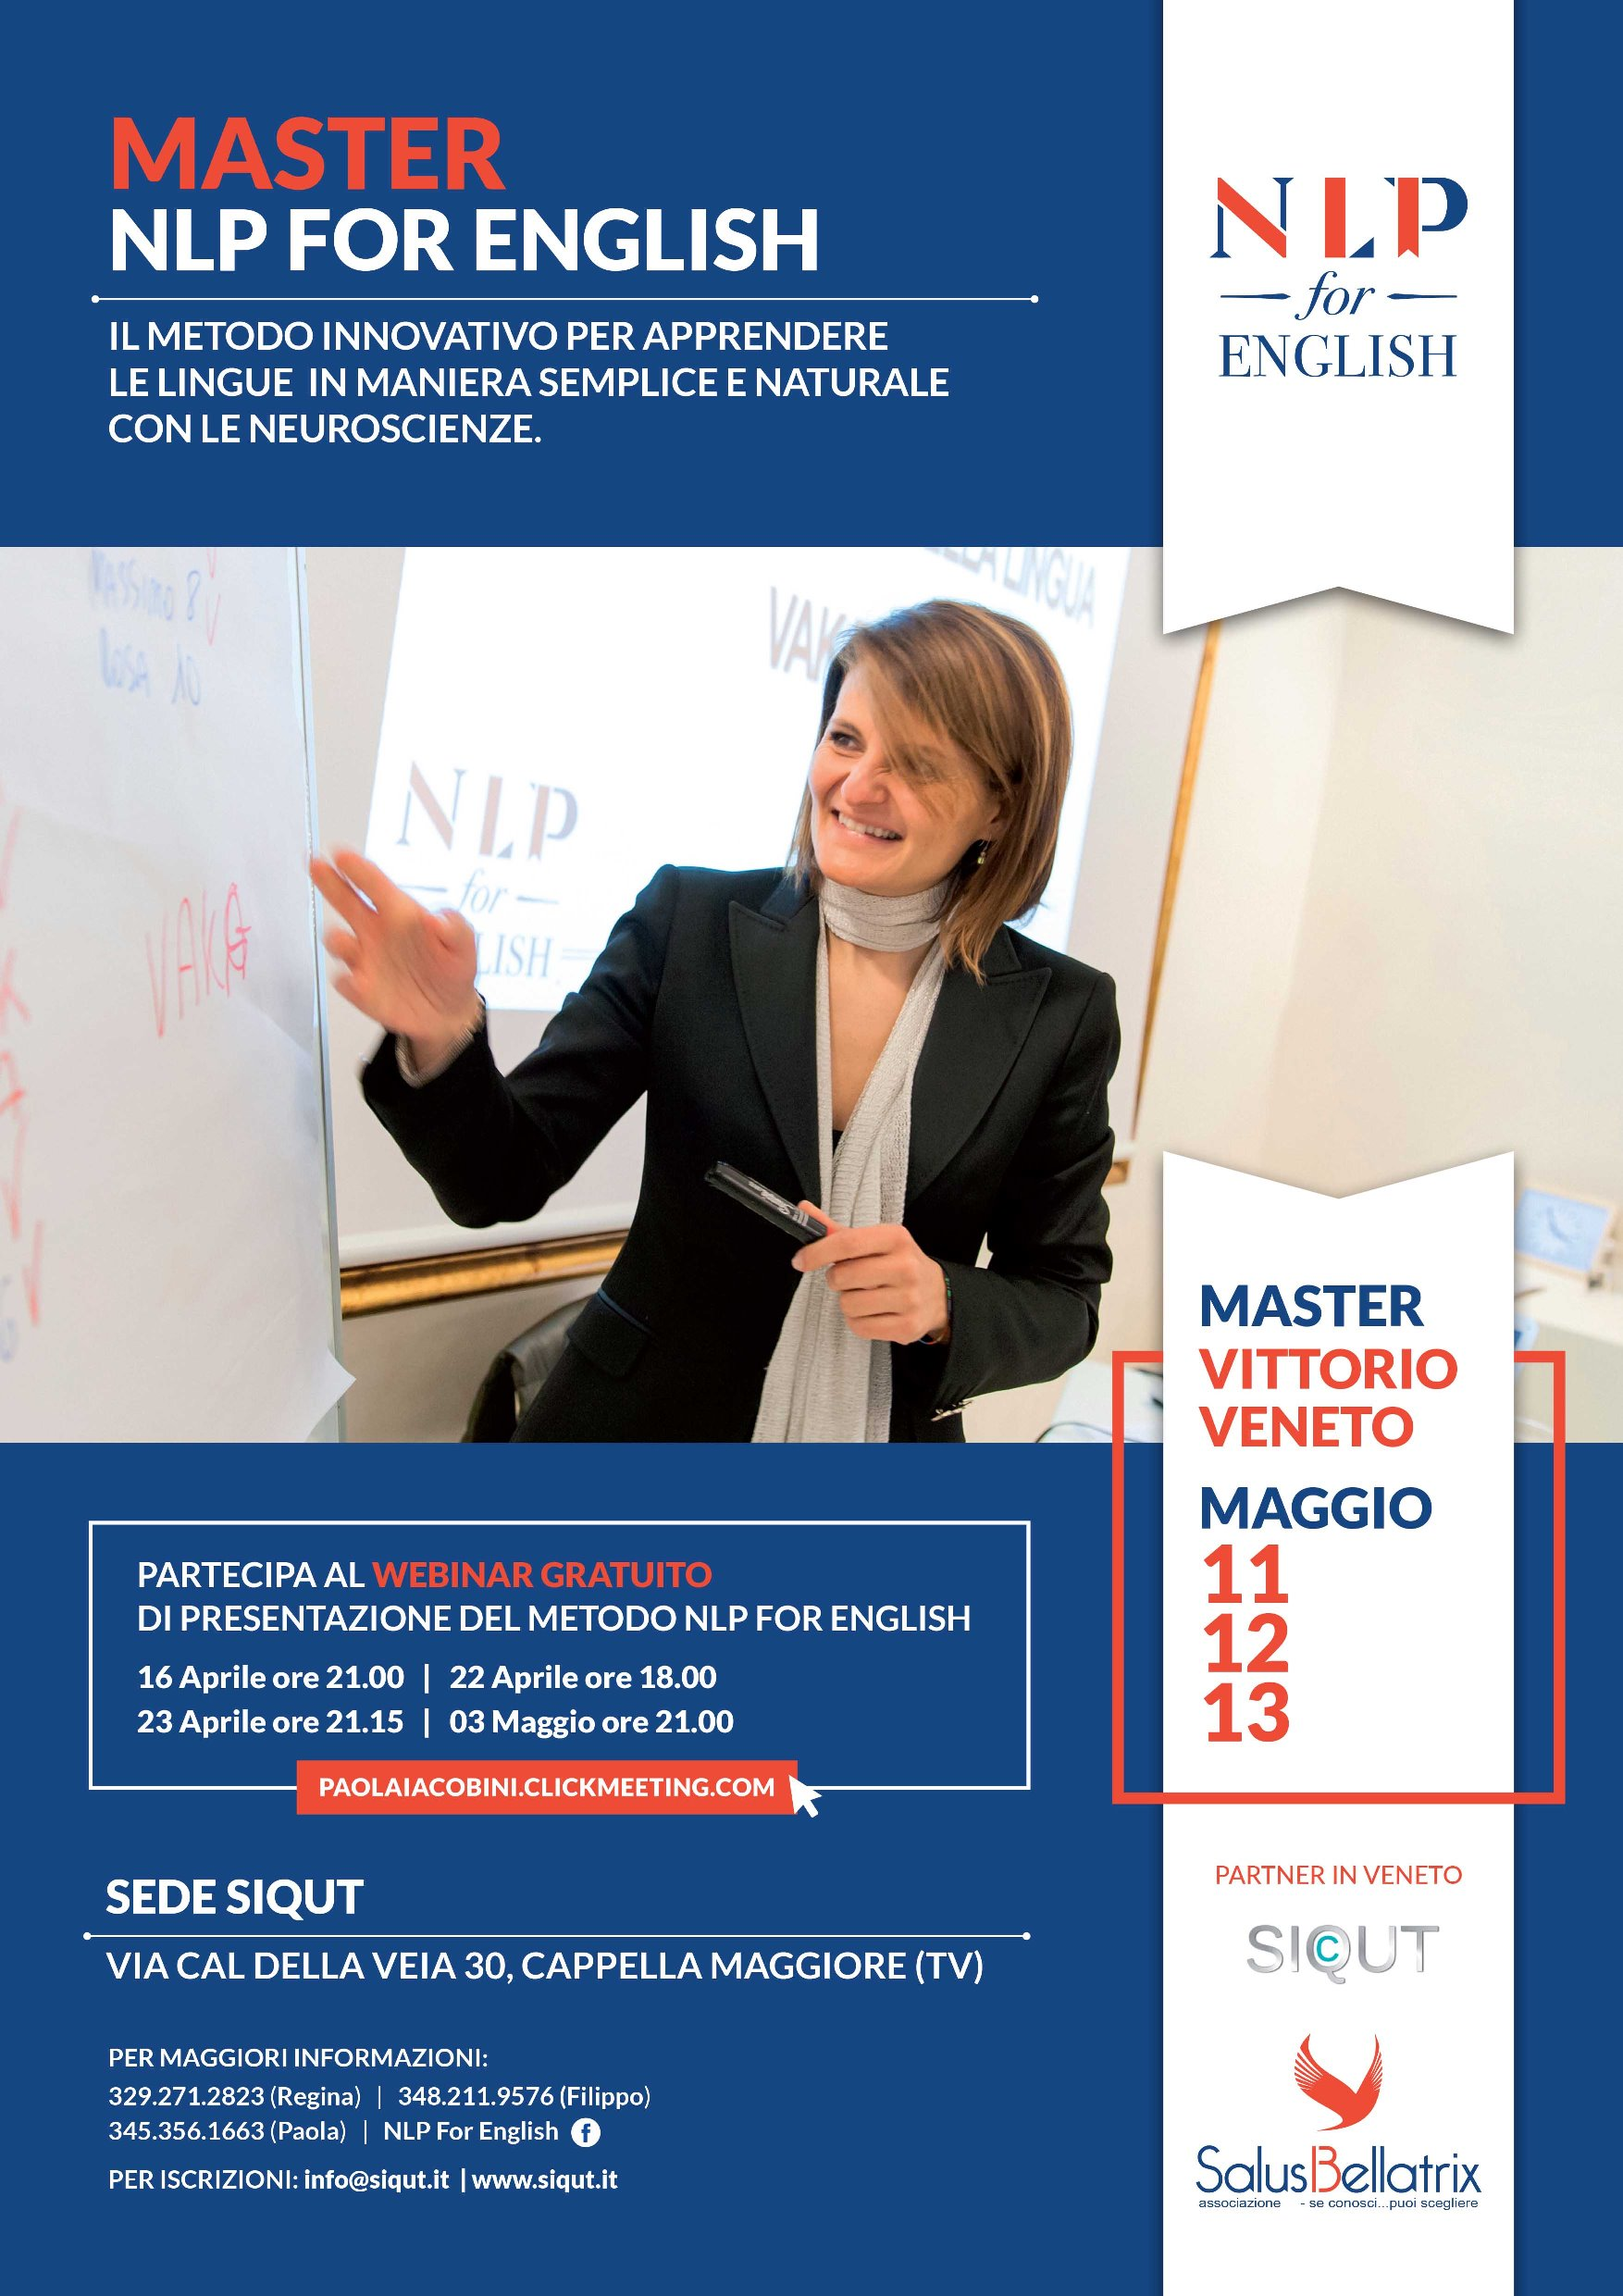 Master – NLP for English – Vittorio Veneto